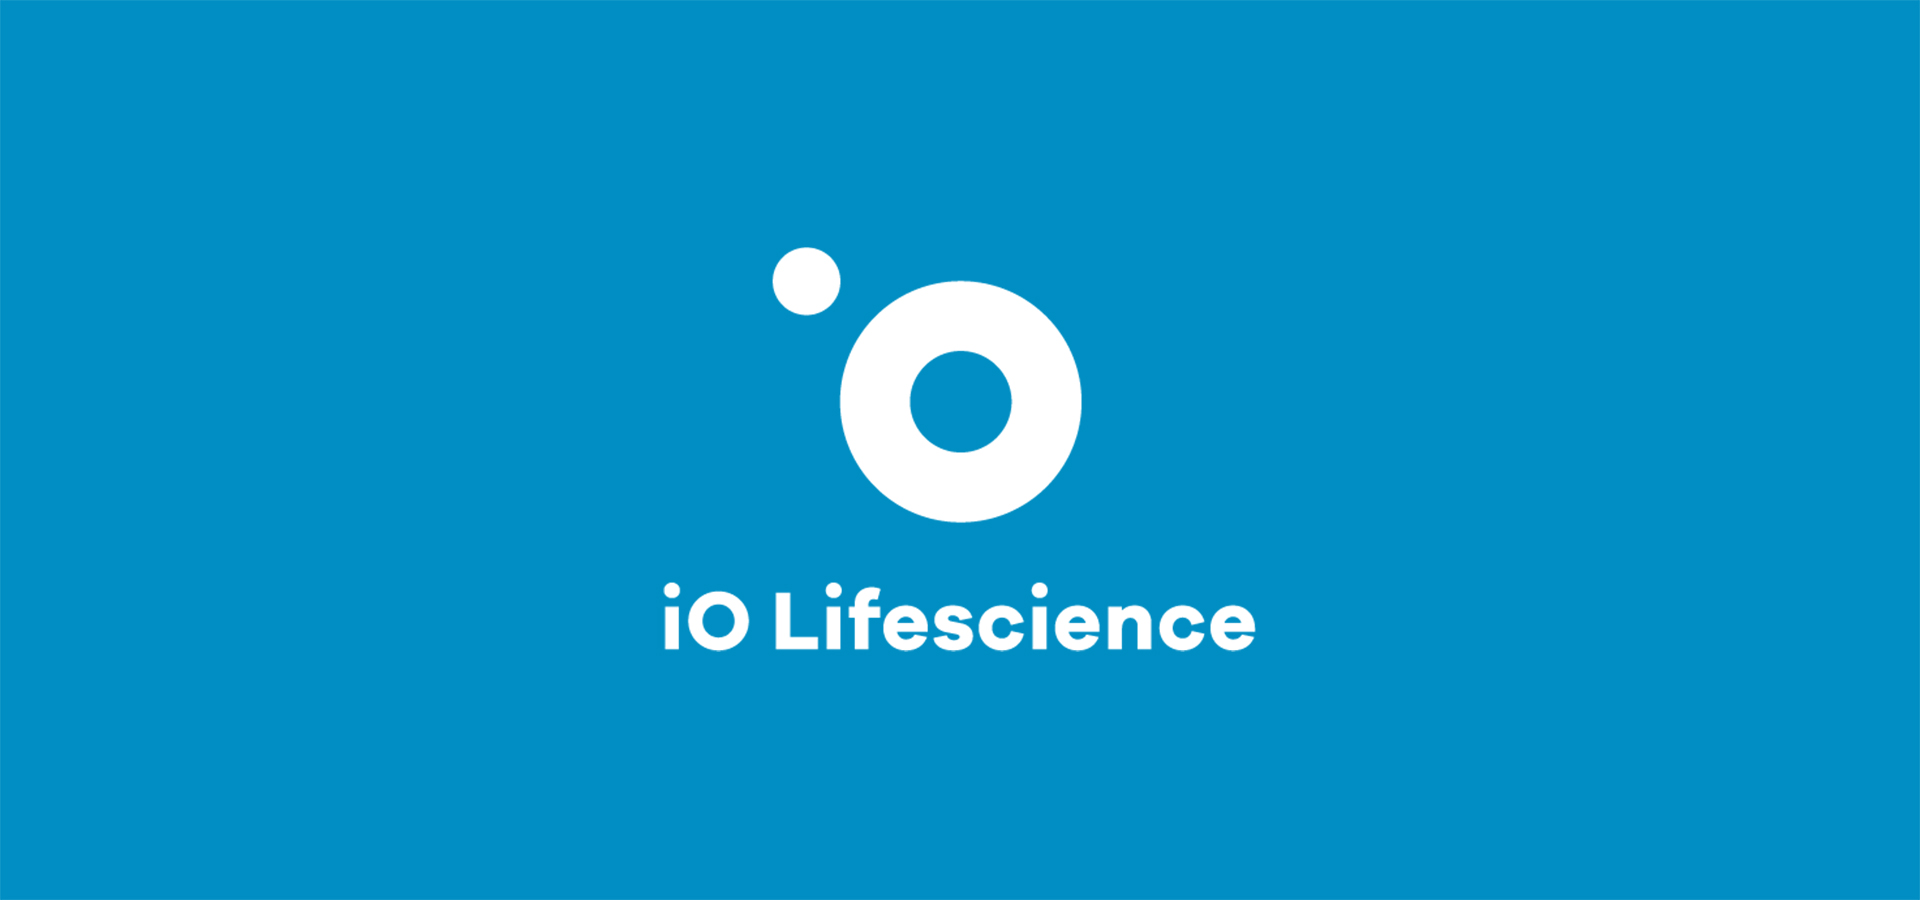 io-lifescience